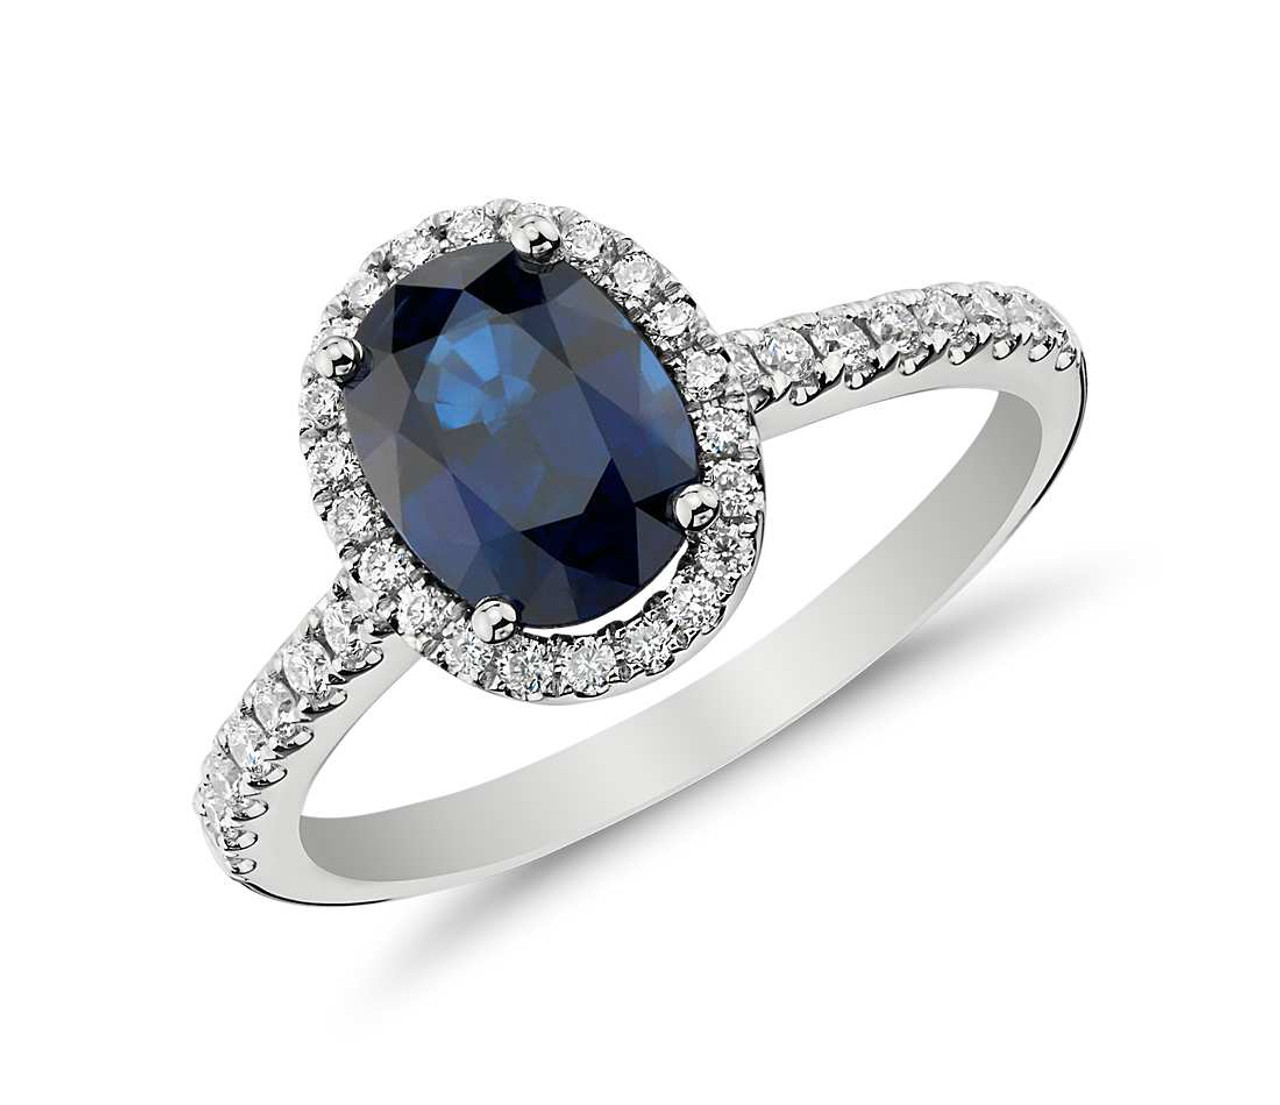 36e7d5b82f8b1 Sapphire and Micropavé Diamond Halo Ring in 14k White Gold (1.55ct)